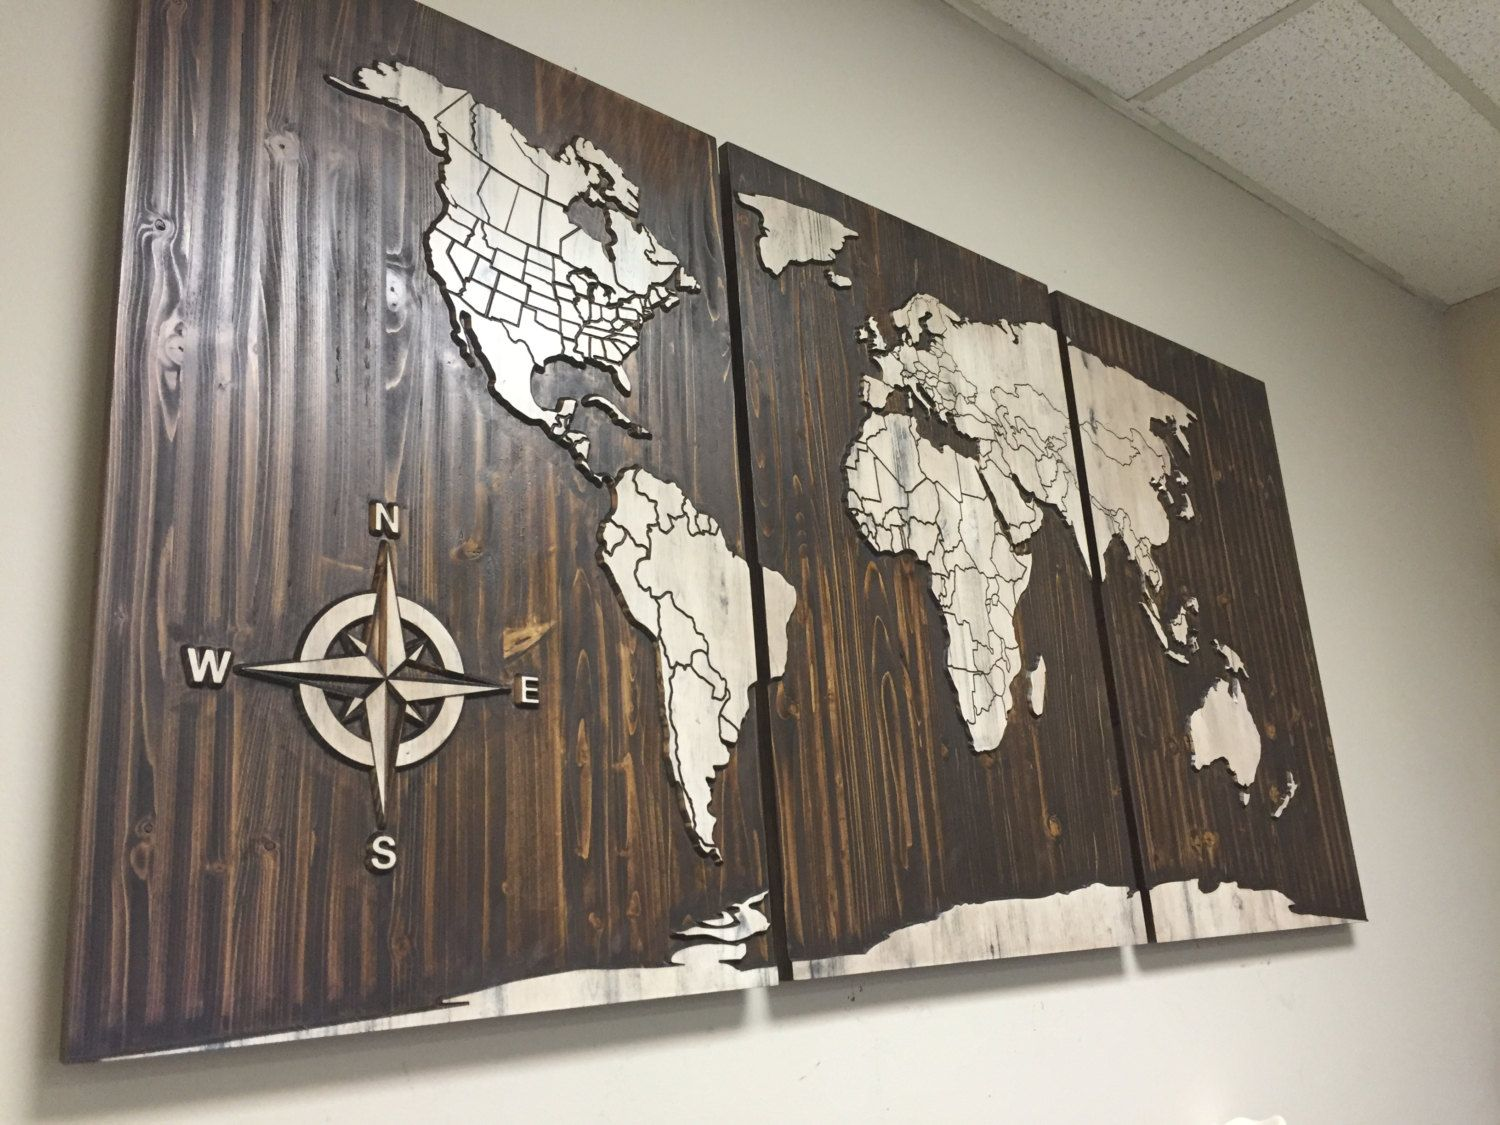 Carved Wood Wall Art Decor Entrancing World Map Carved Wood Wall Art Home Wall Decor Wooden 3 Panel Decorating Inspiration